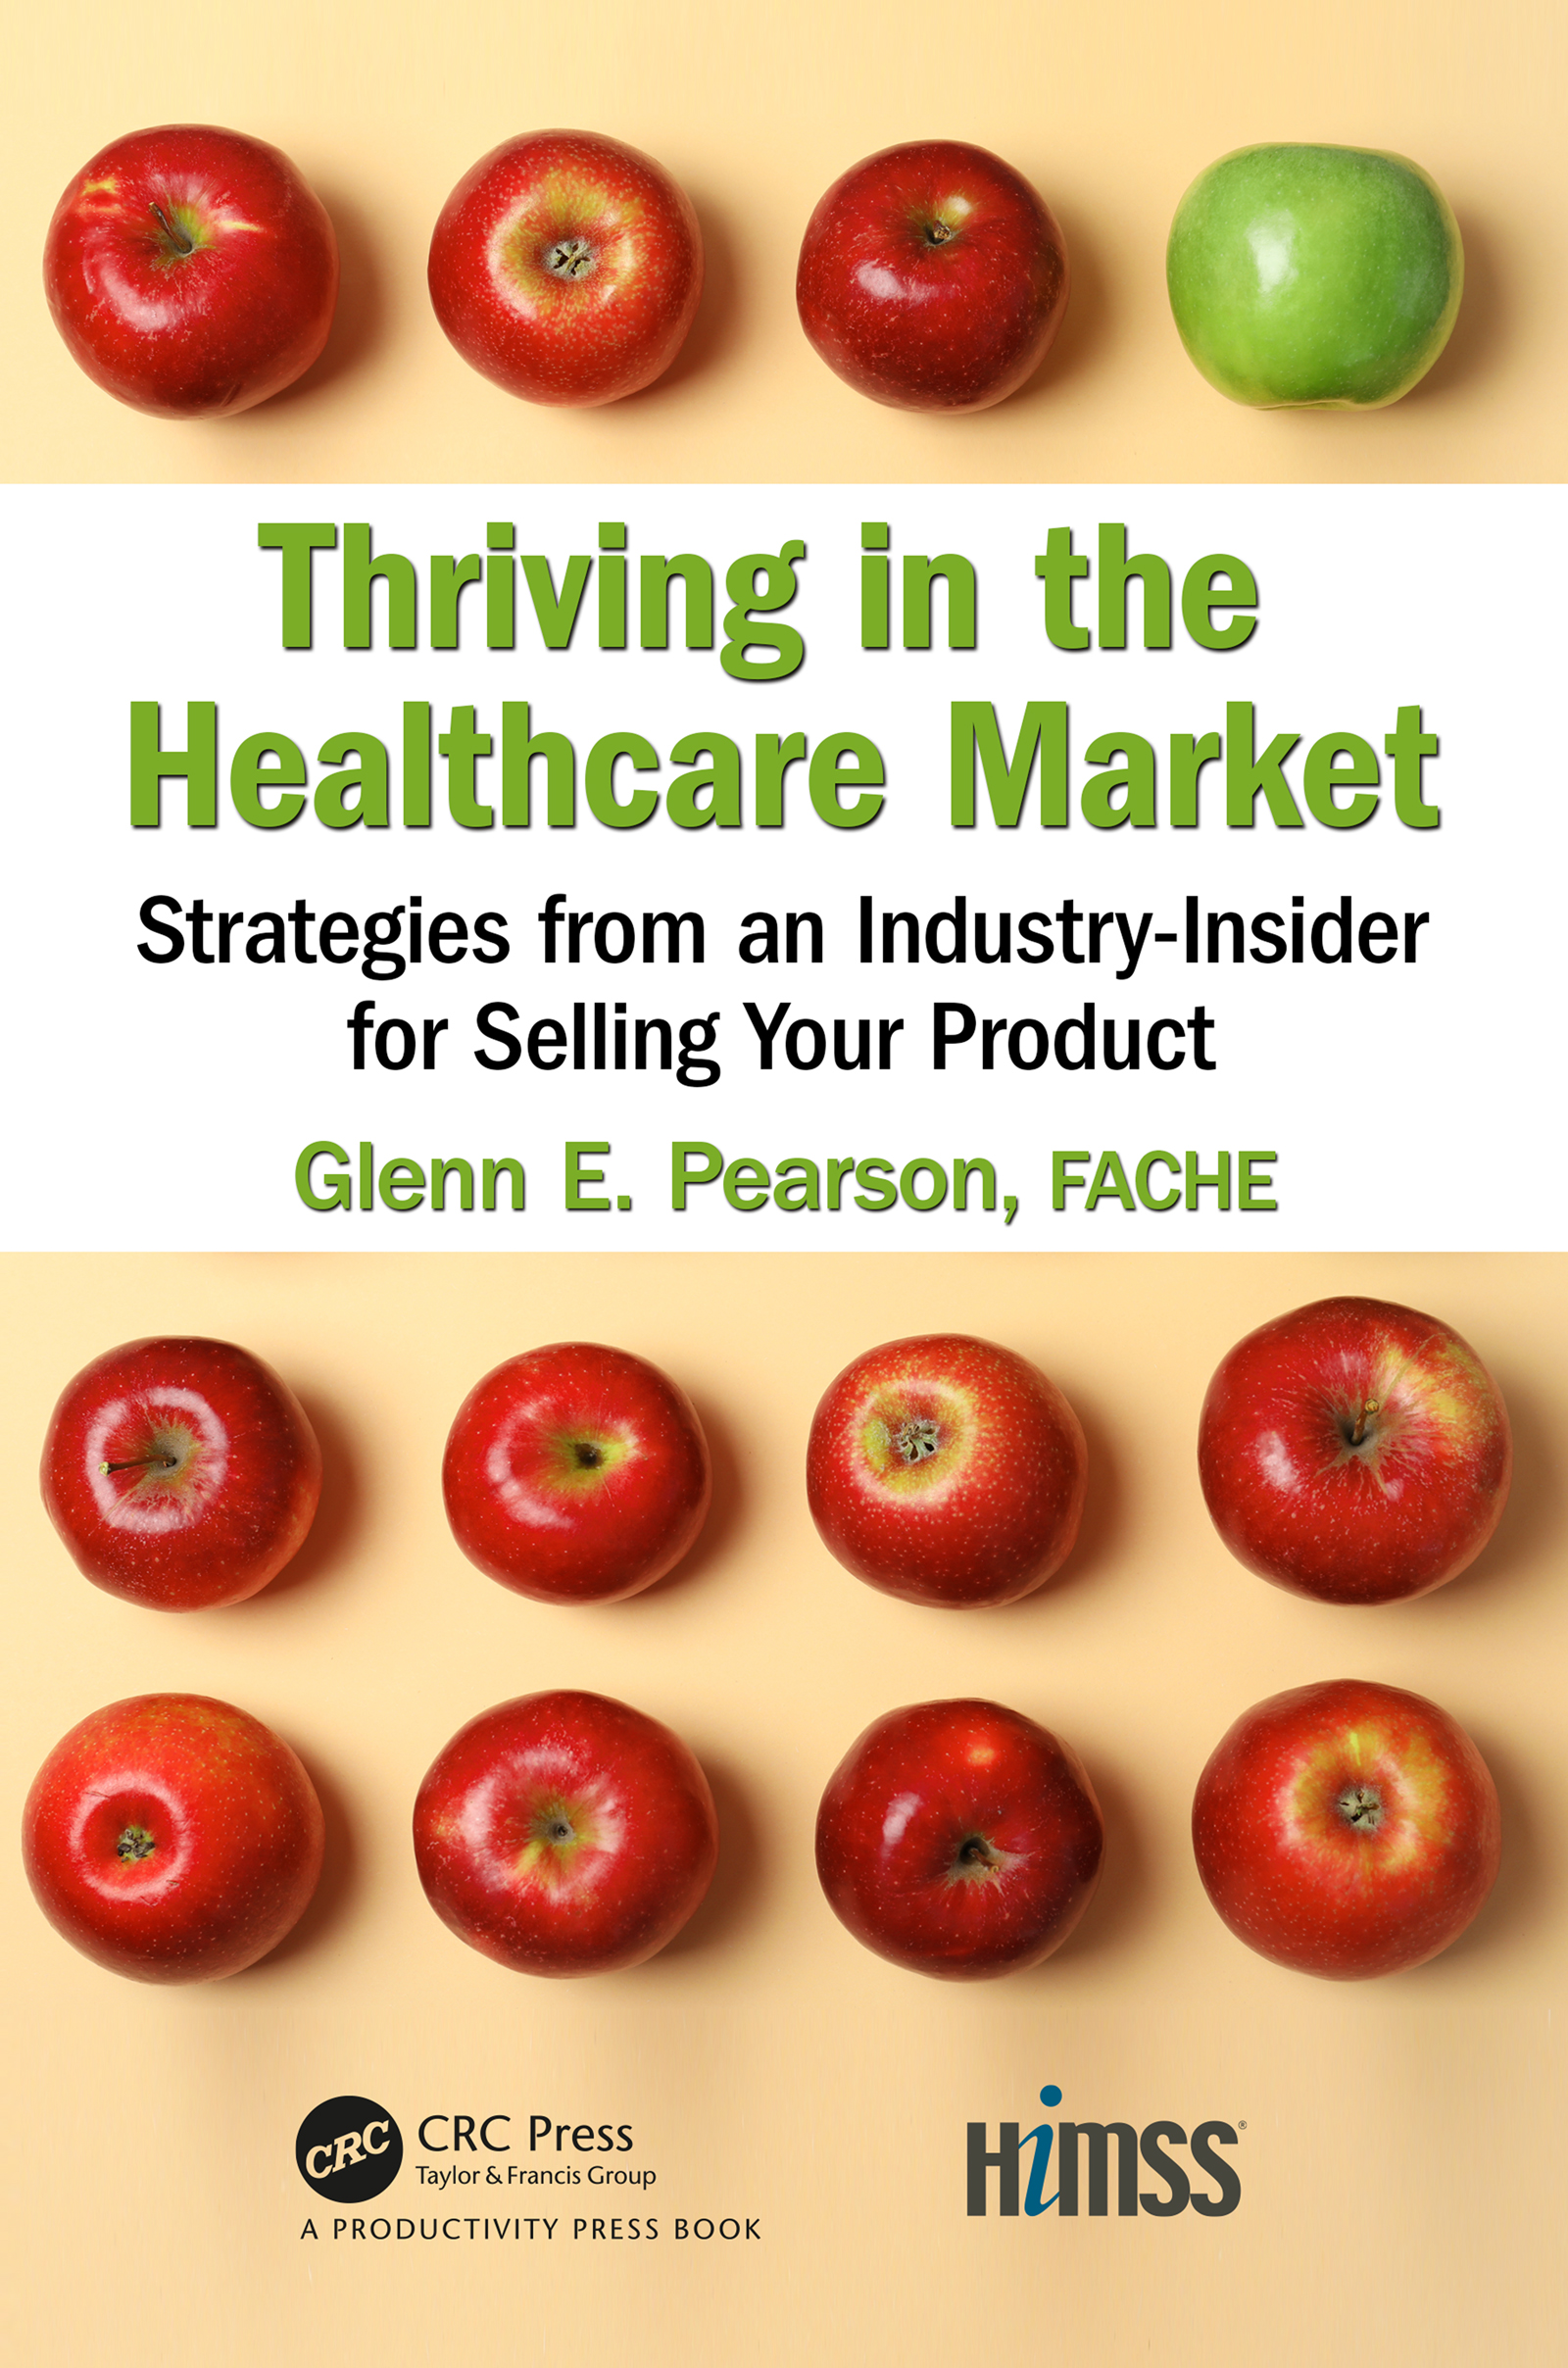 Thriving in the Healthcare Market: Strategies from an Industry-Insider for Selling Your Product book cover